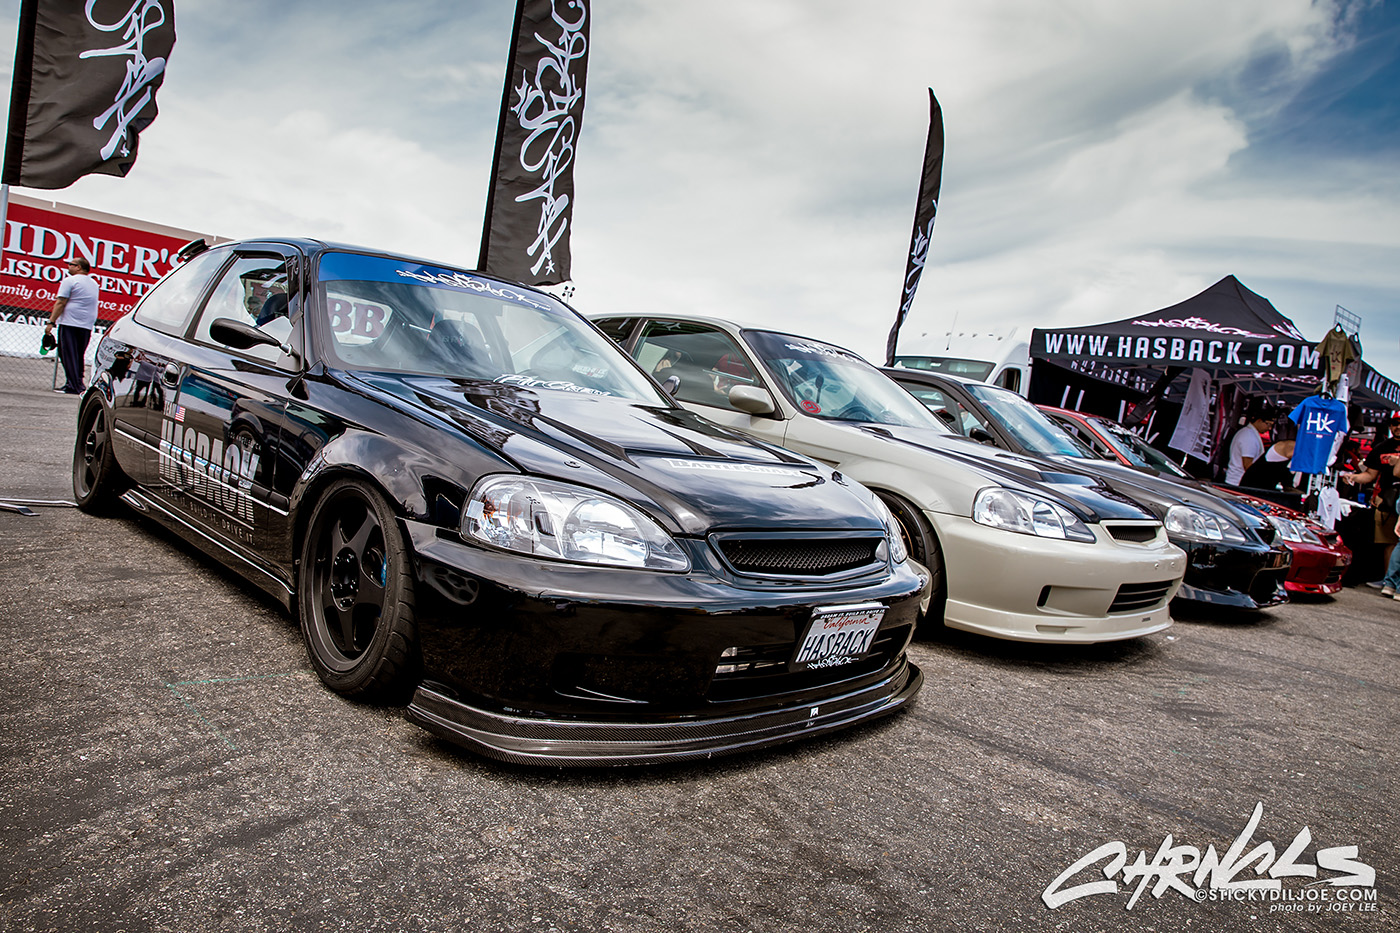 Eibach Honda Meet 2018 Coverage… Part 1…